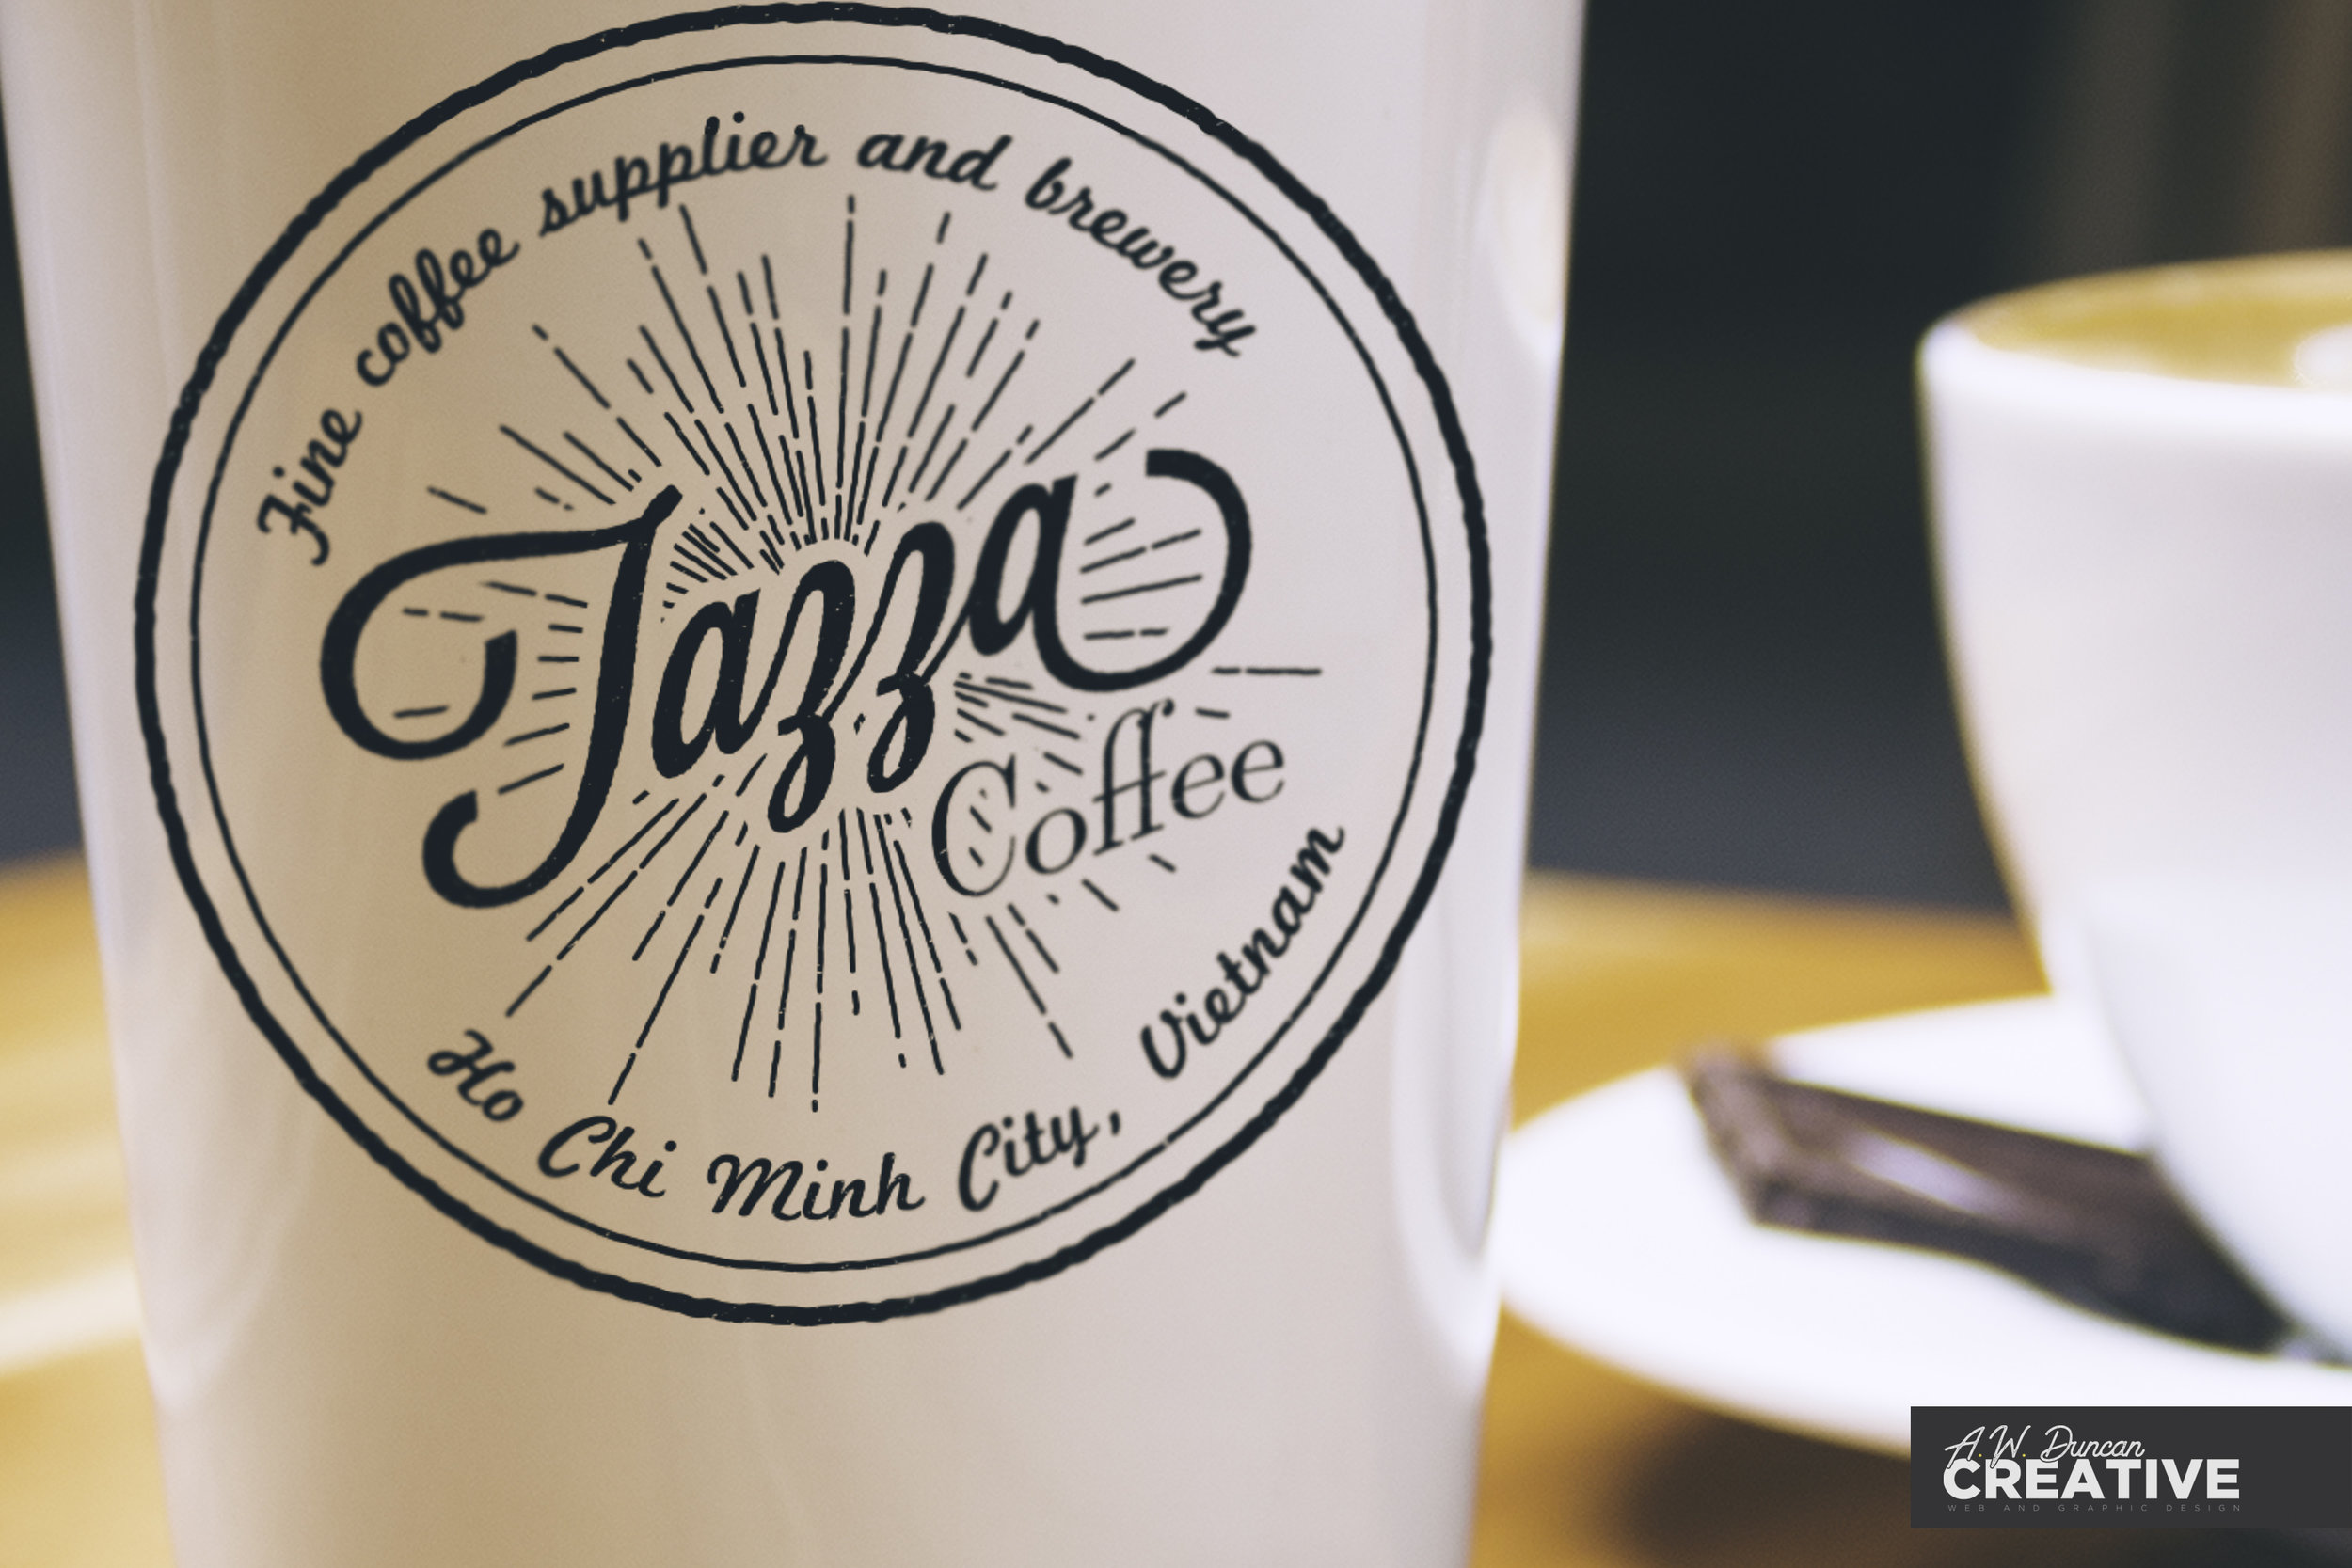 Tazza Coffee Shop 2